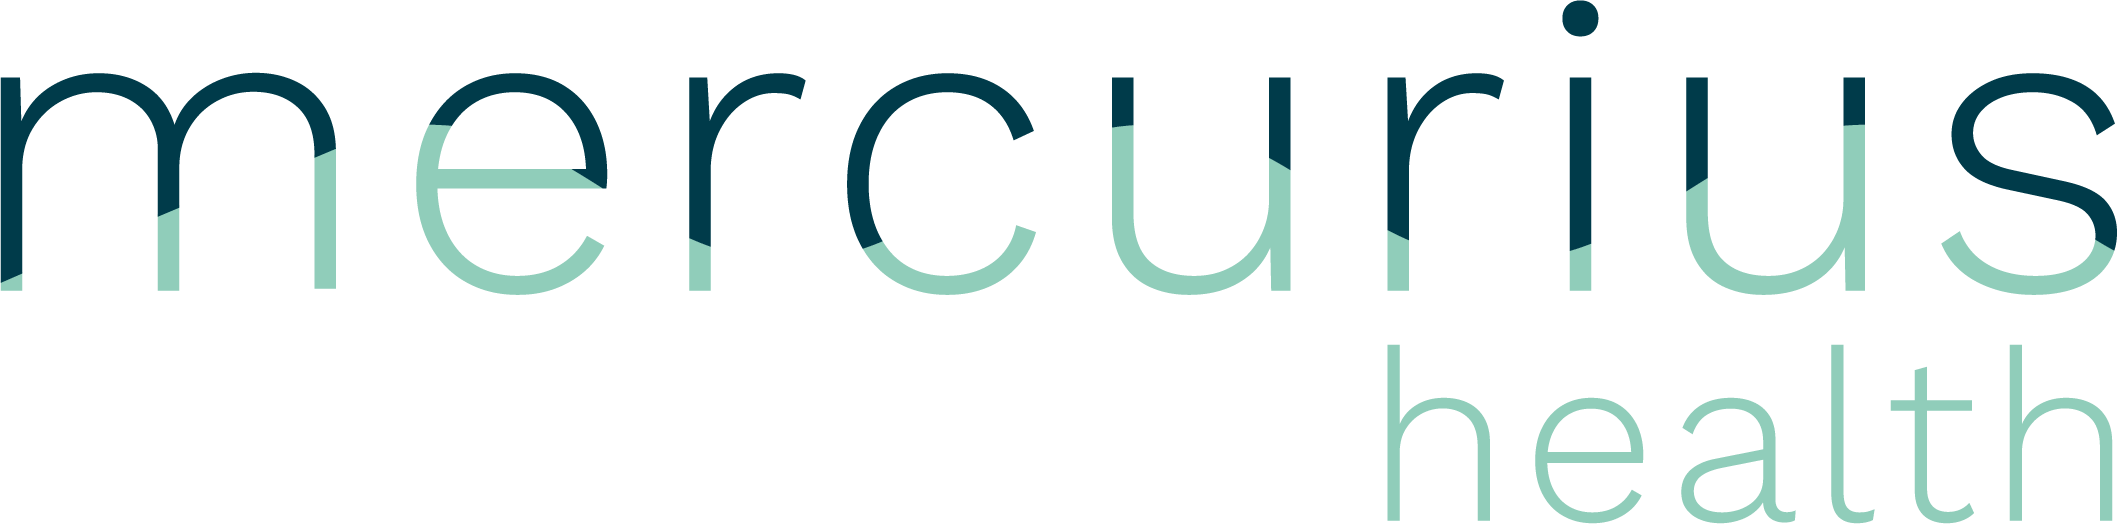 Mercurius Health logo